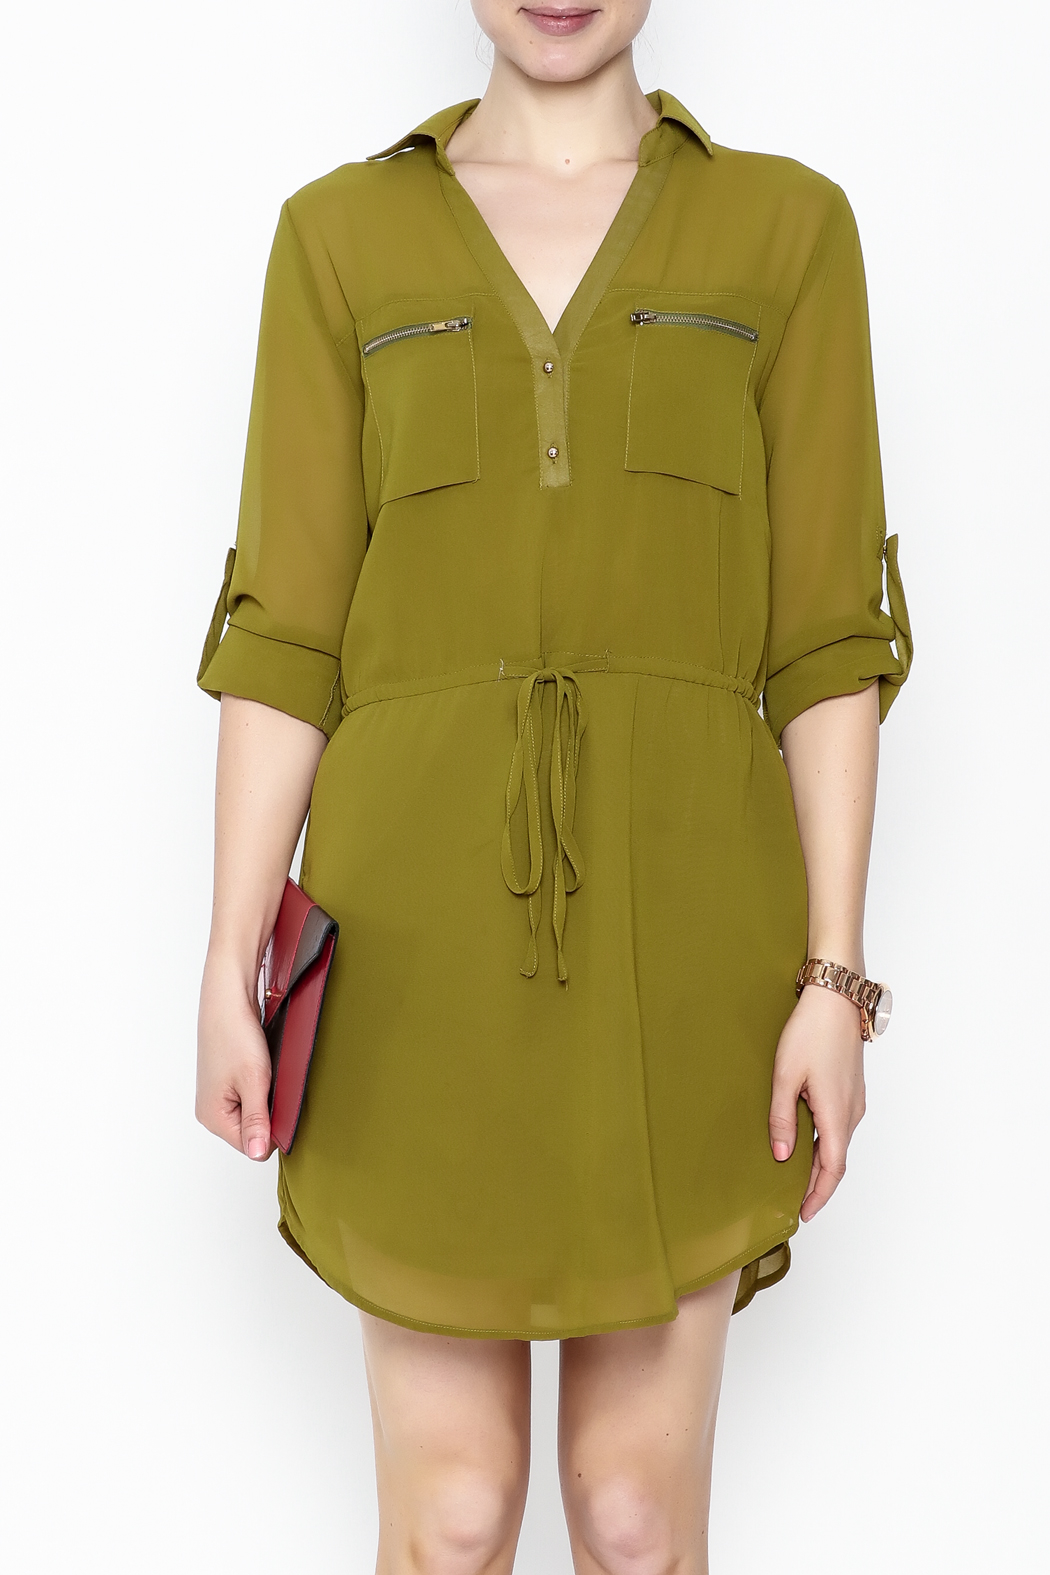 Pure Hype Green Tunic Dress - Front Full Image